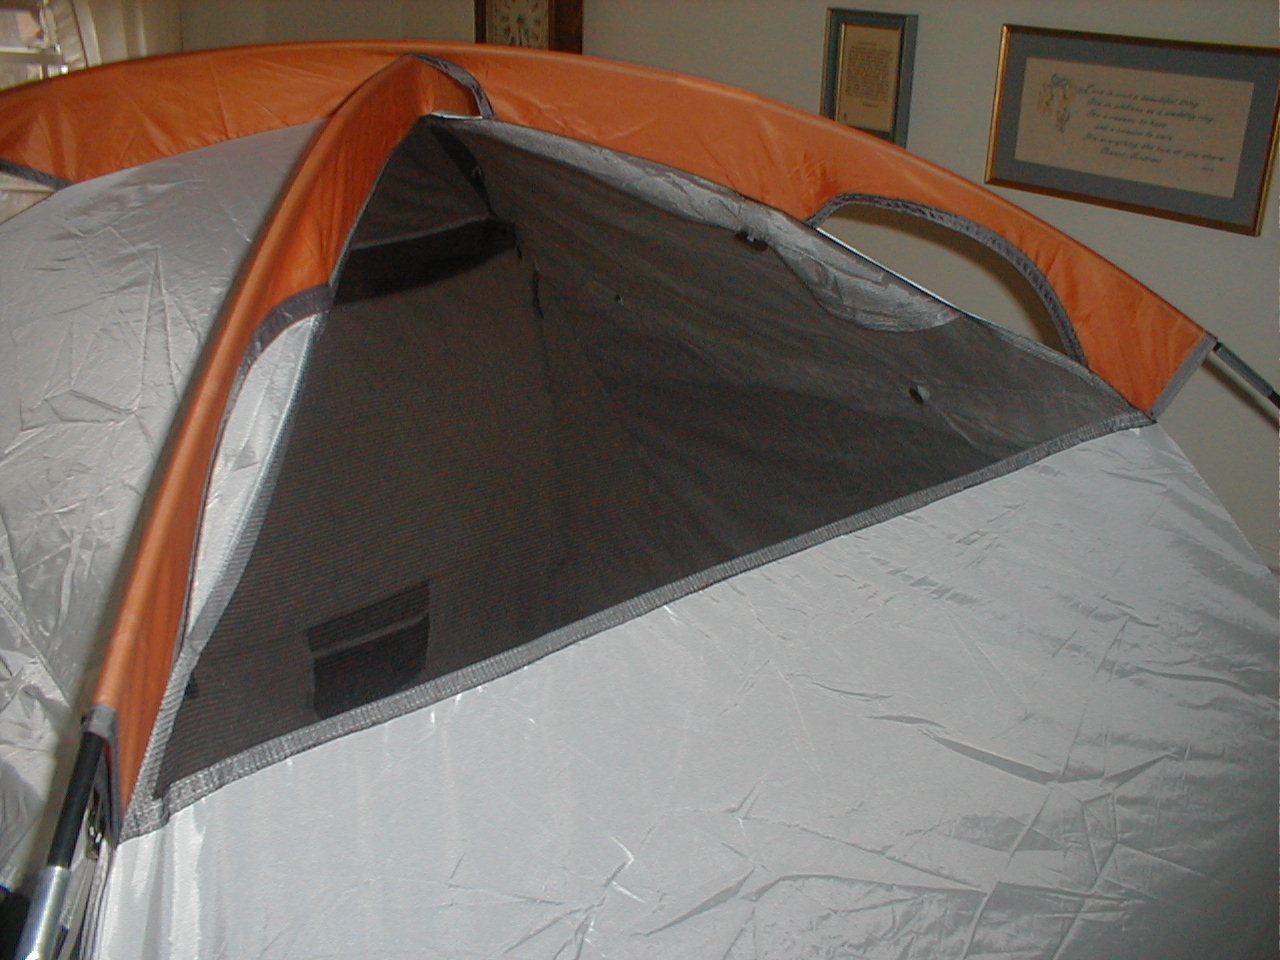 Seal your tent's mesh panels